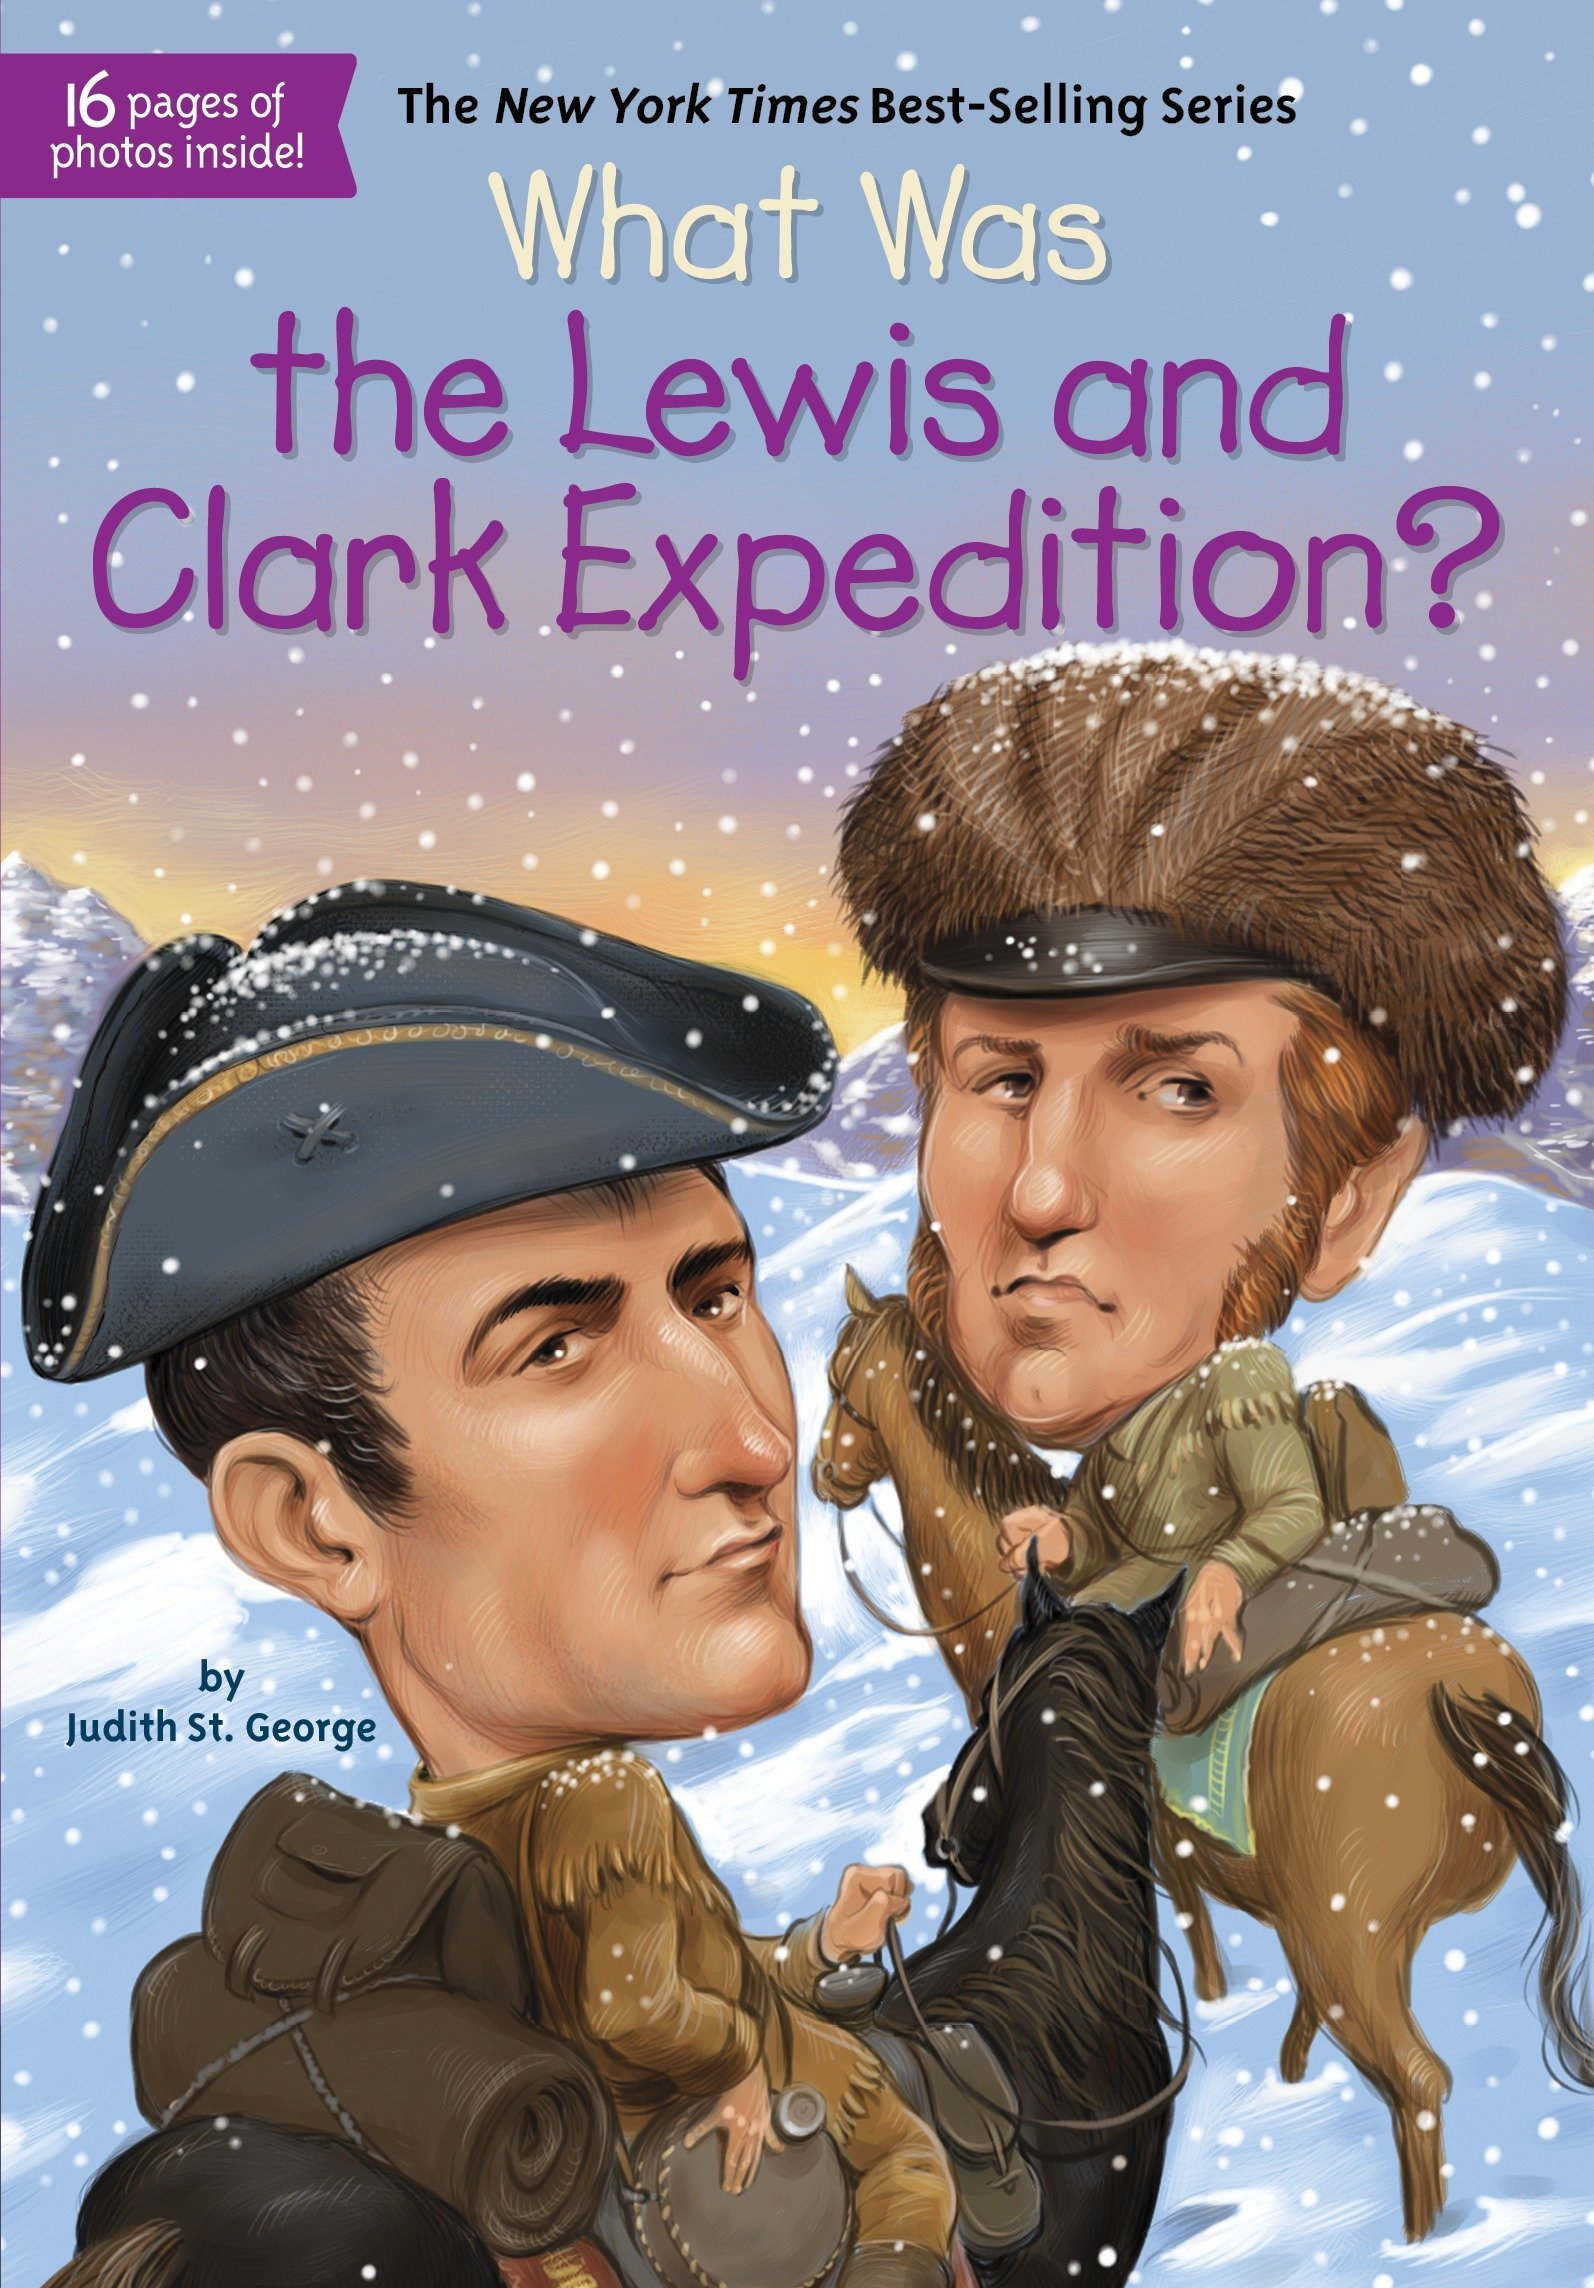 Lewis and Clark 200 Archive]